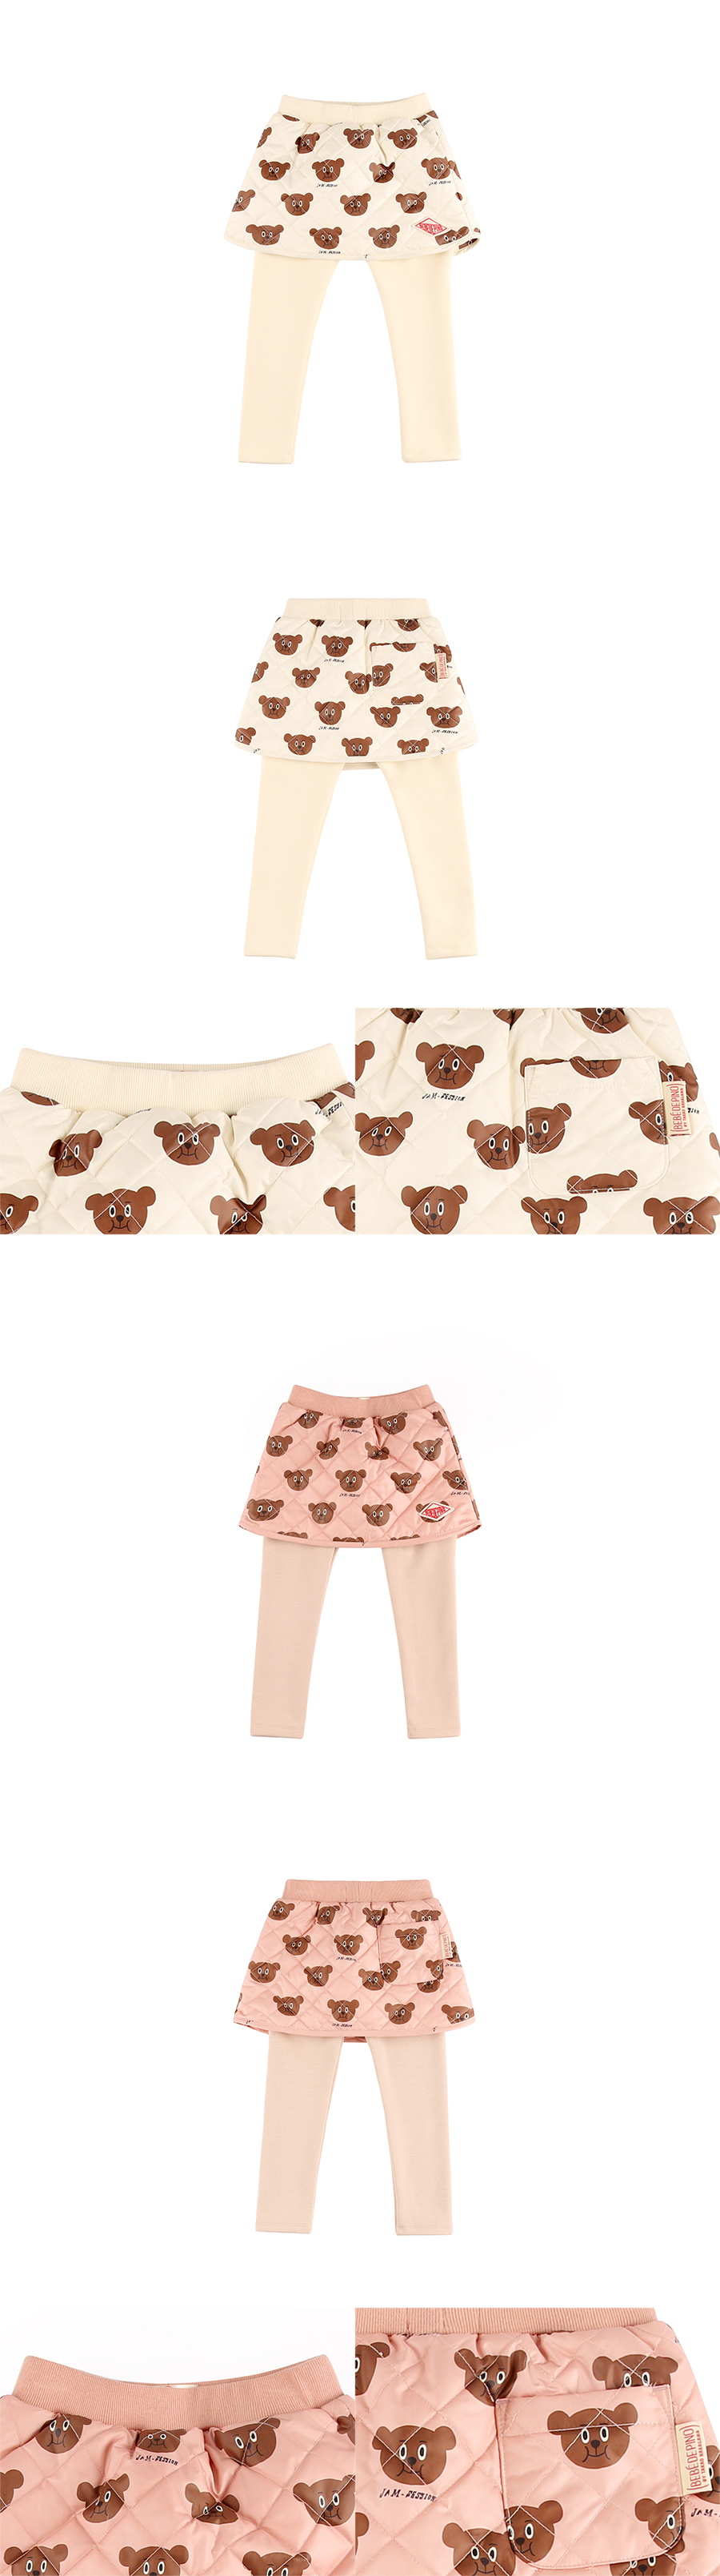 Multi willy bear quilted skirt leggings 상세 이미지